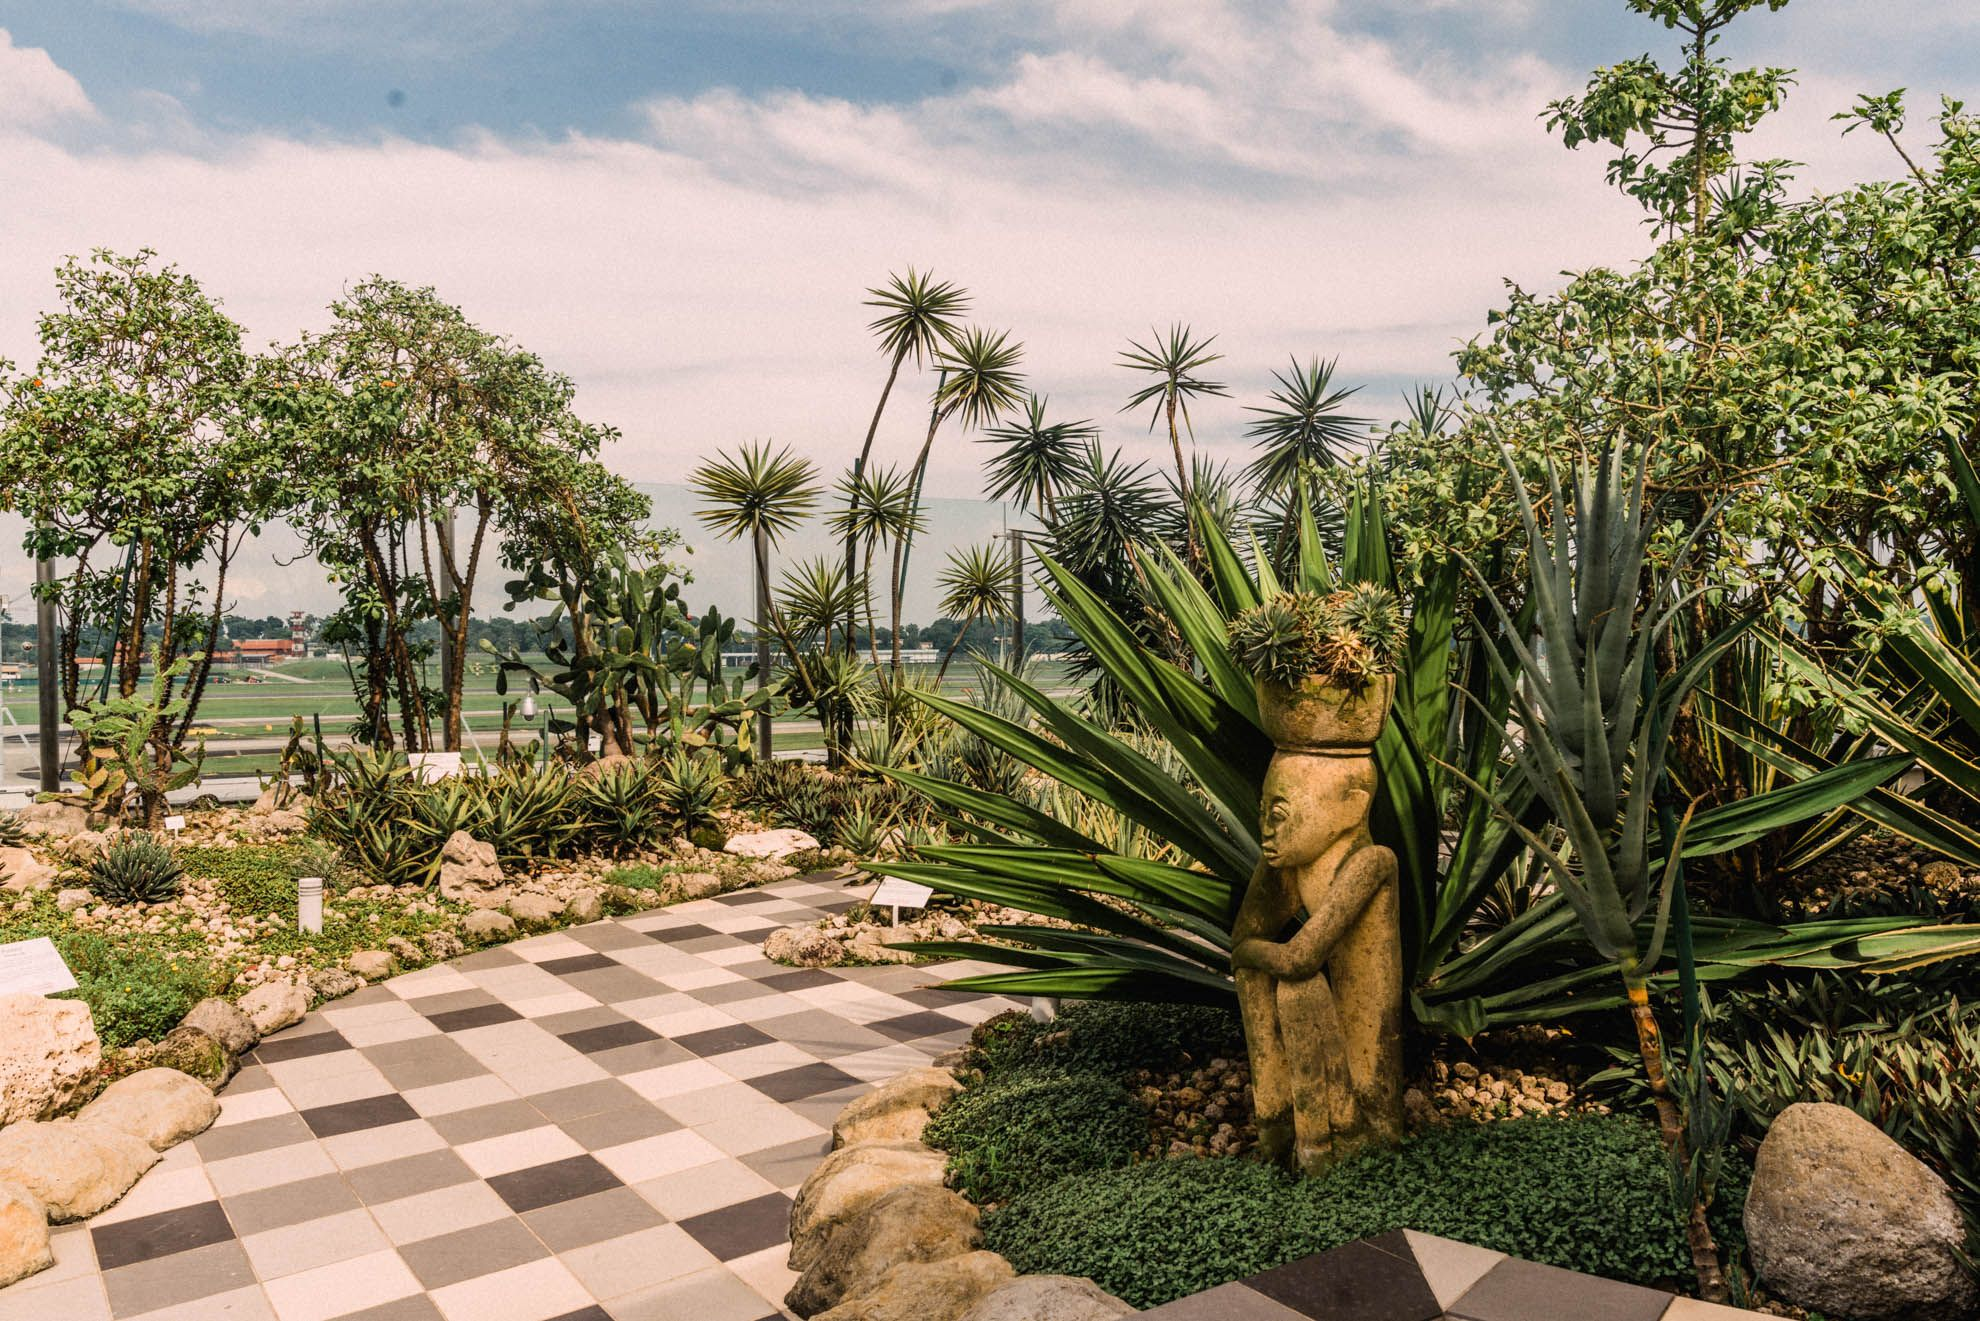 The Most Instagrammable Places In Singapore A Singapore Photo Guide Singapore Photos Singapore Itinerary Singapore Travel Tips